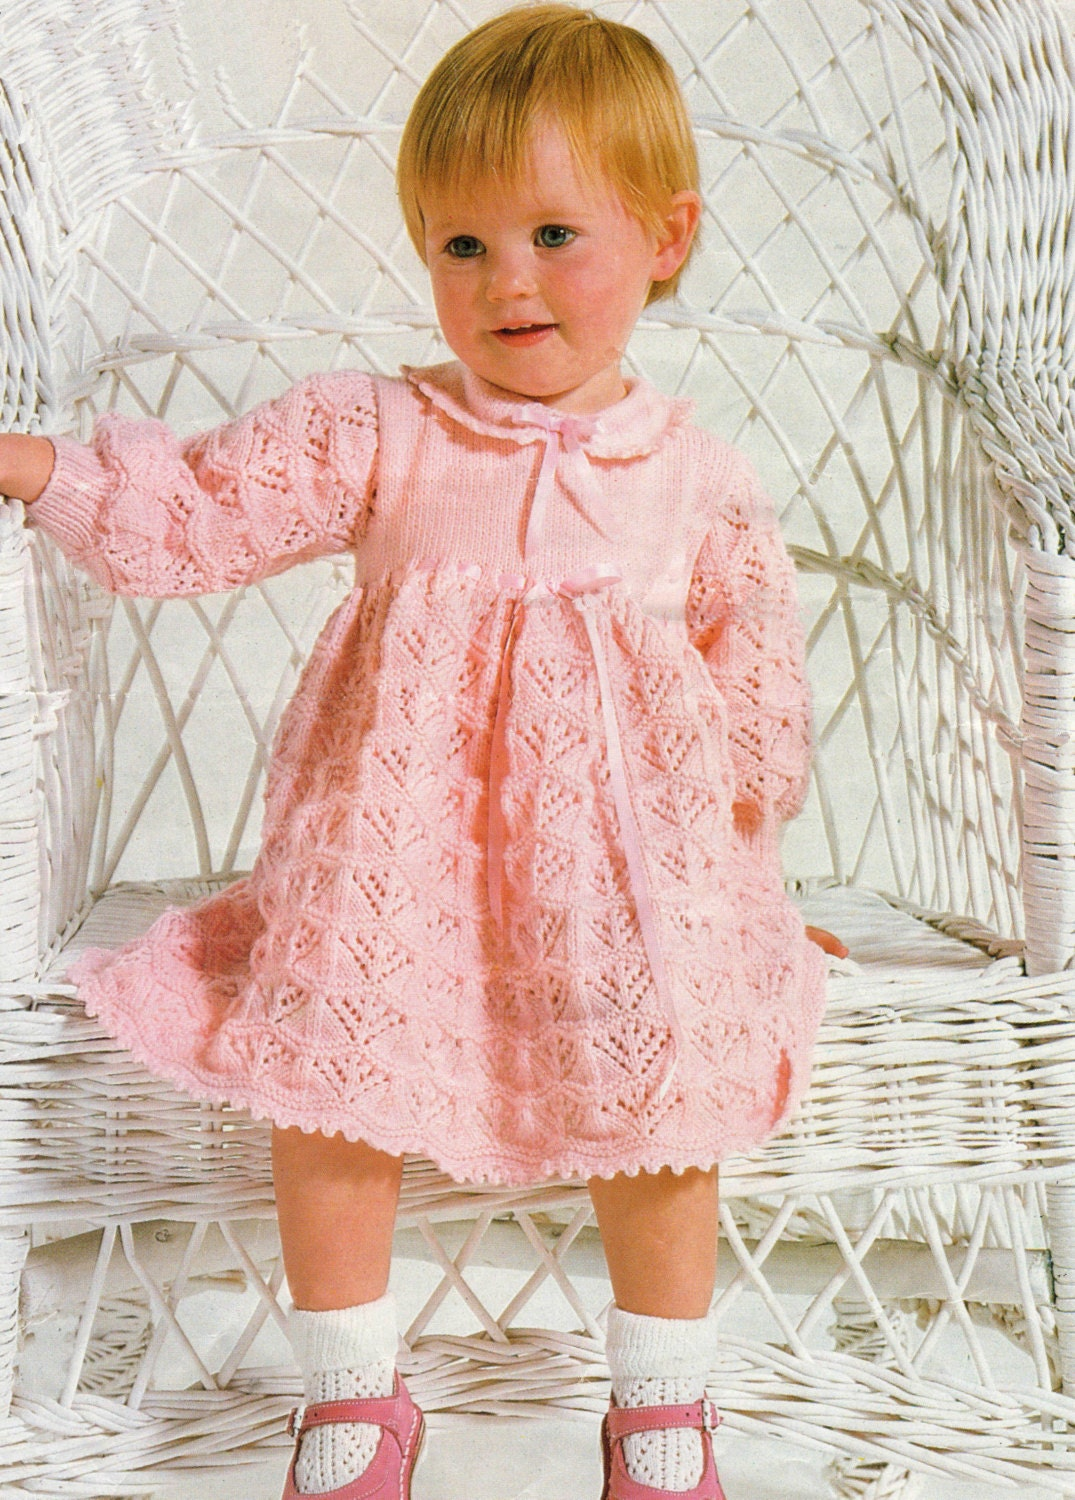 Baby Dress Knitting Pattern to fit 18 22 inch chest uses 4